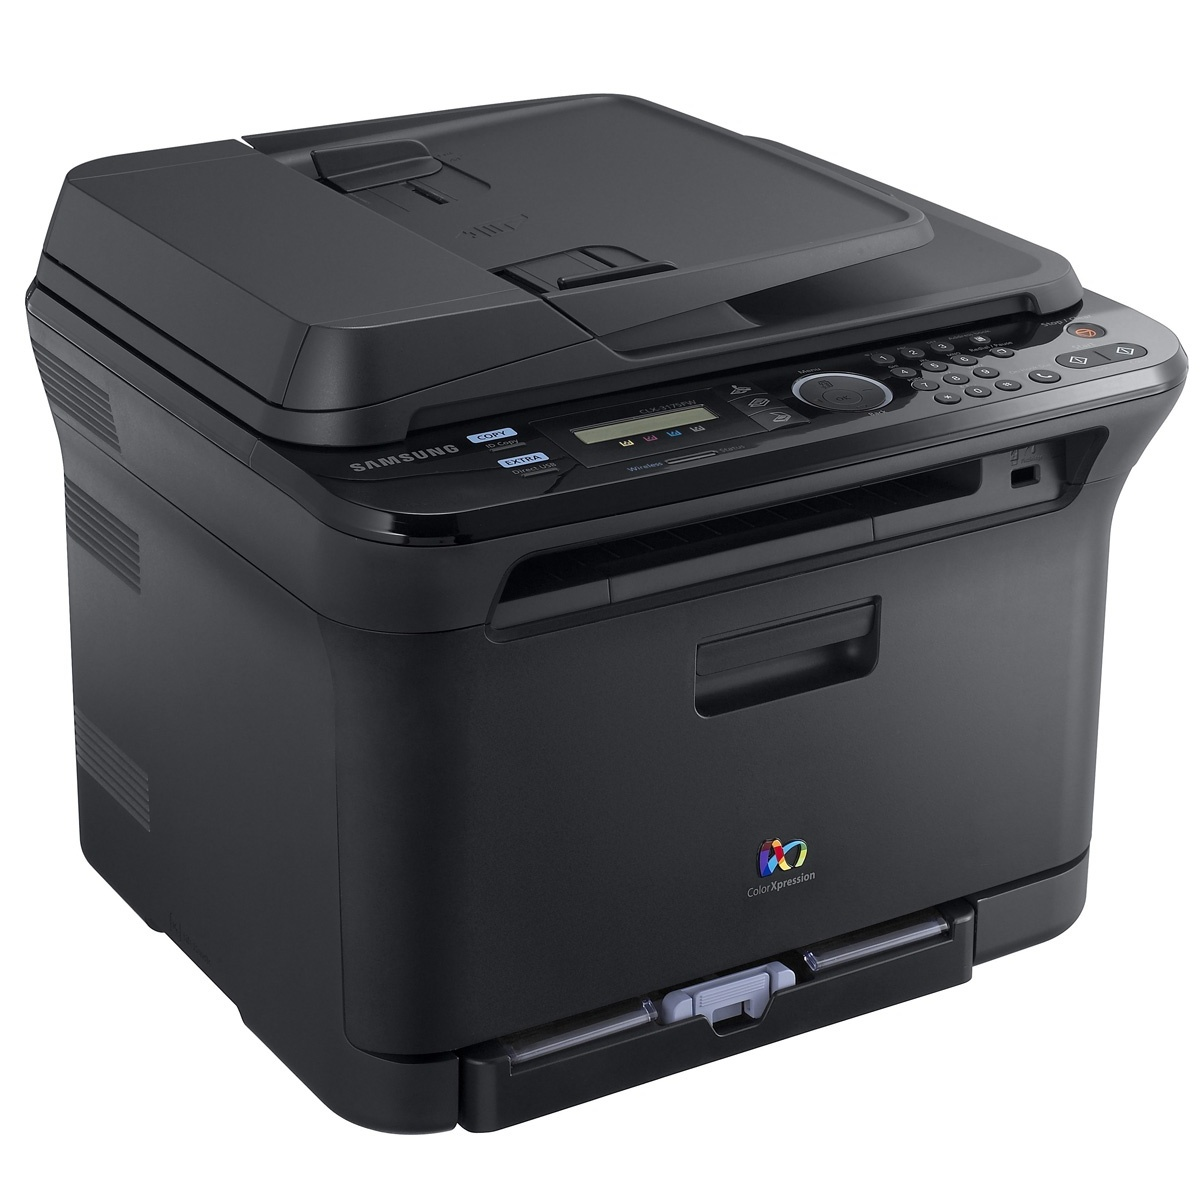 Samsung CLX-3175 Multifunction Laser Printer